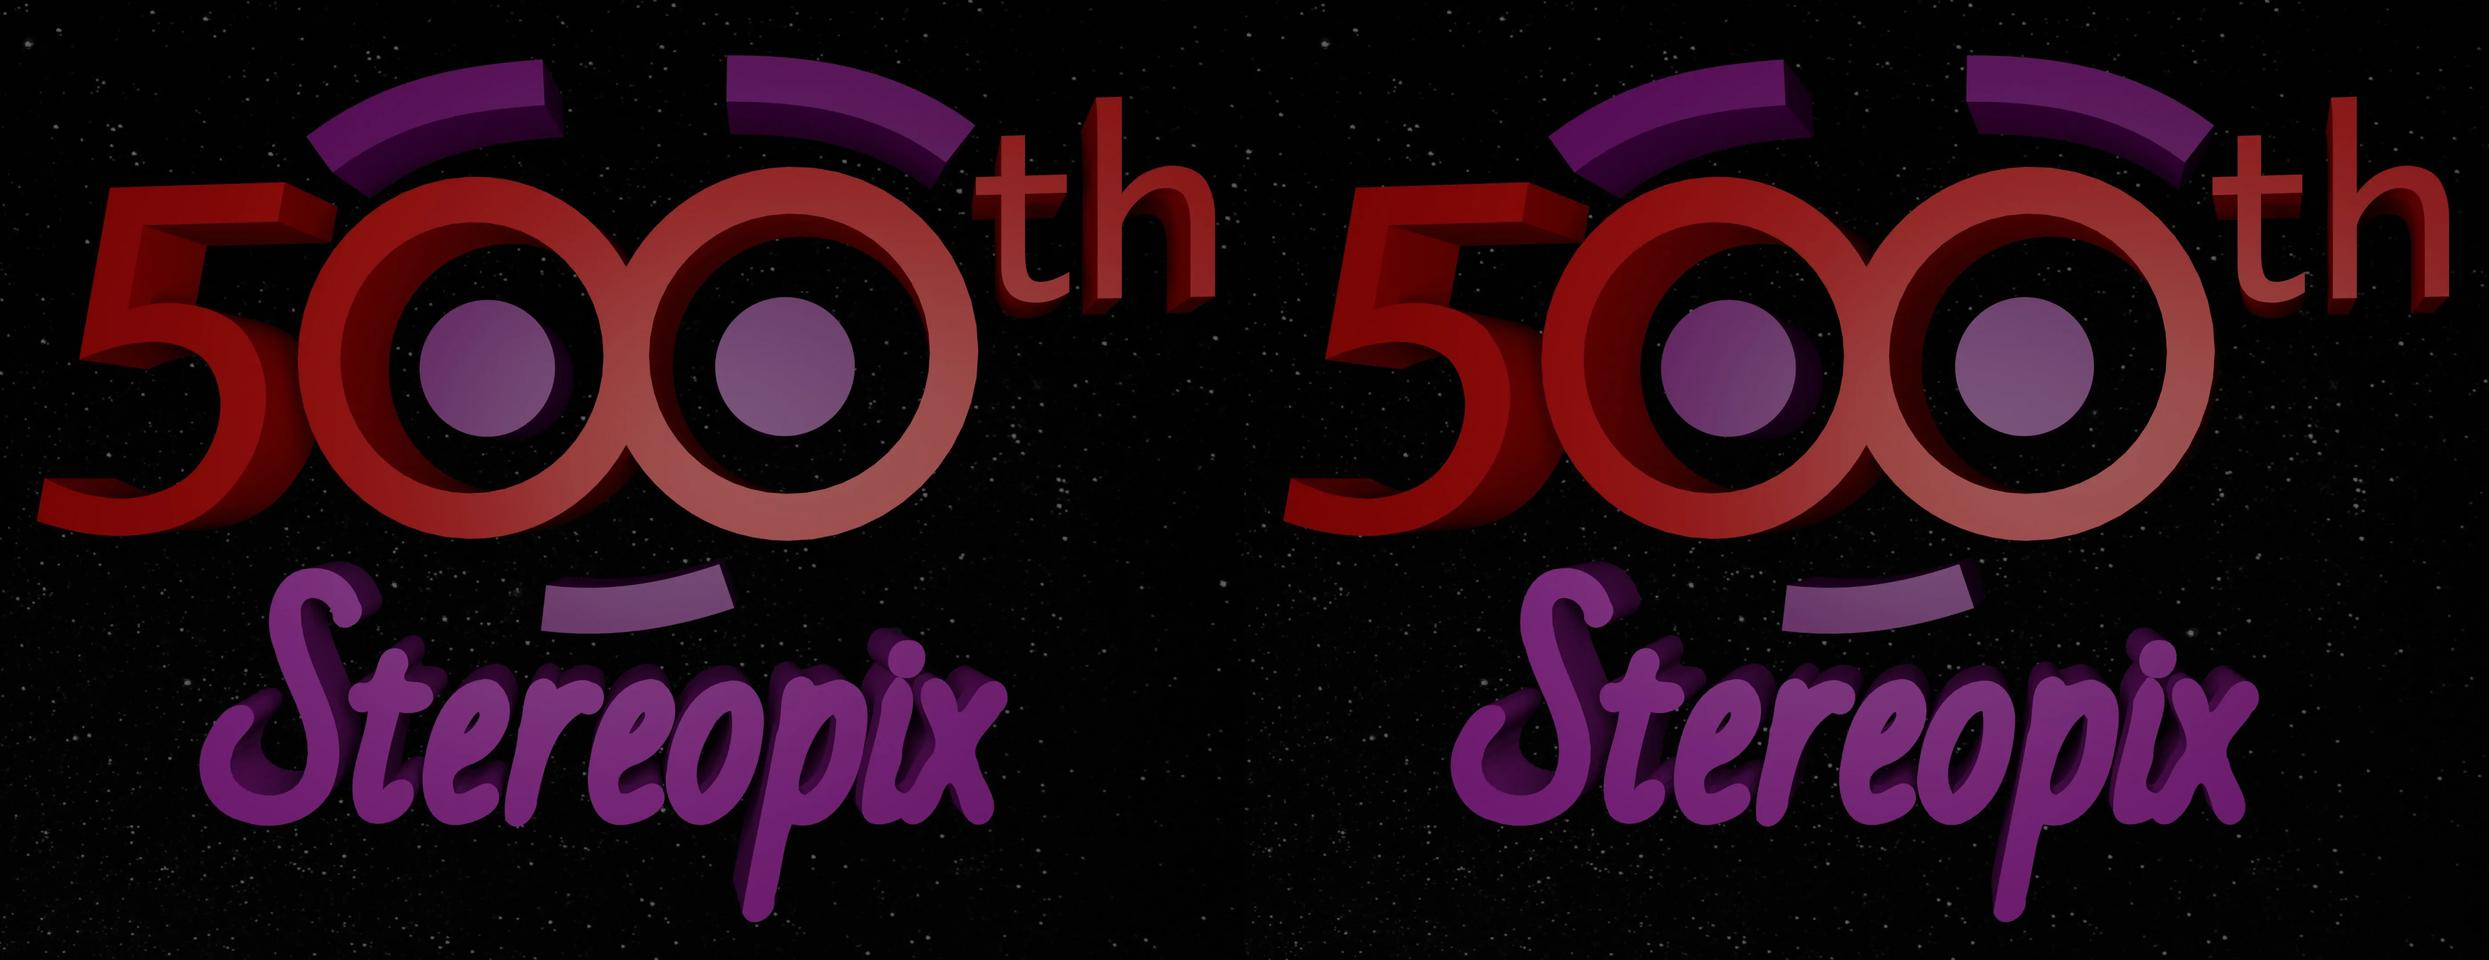 500th stereopix